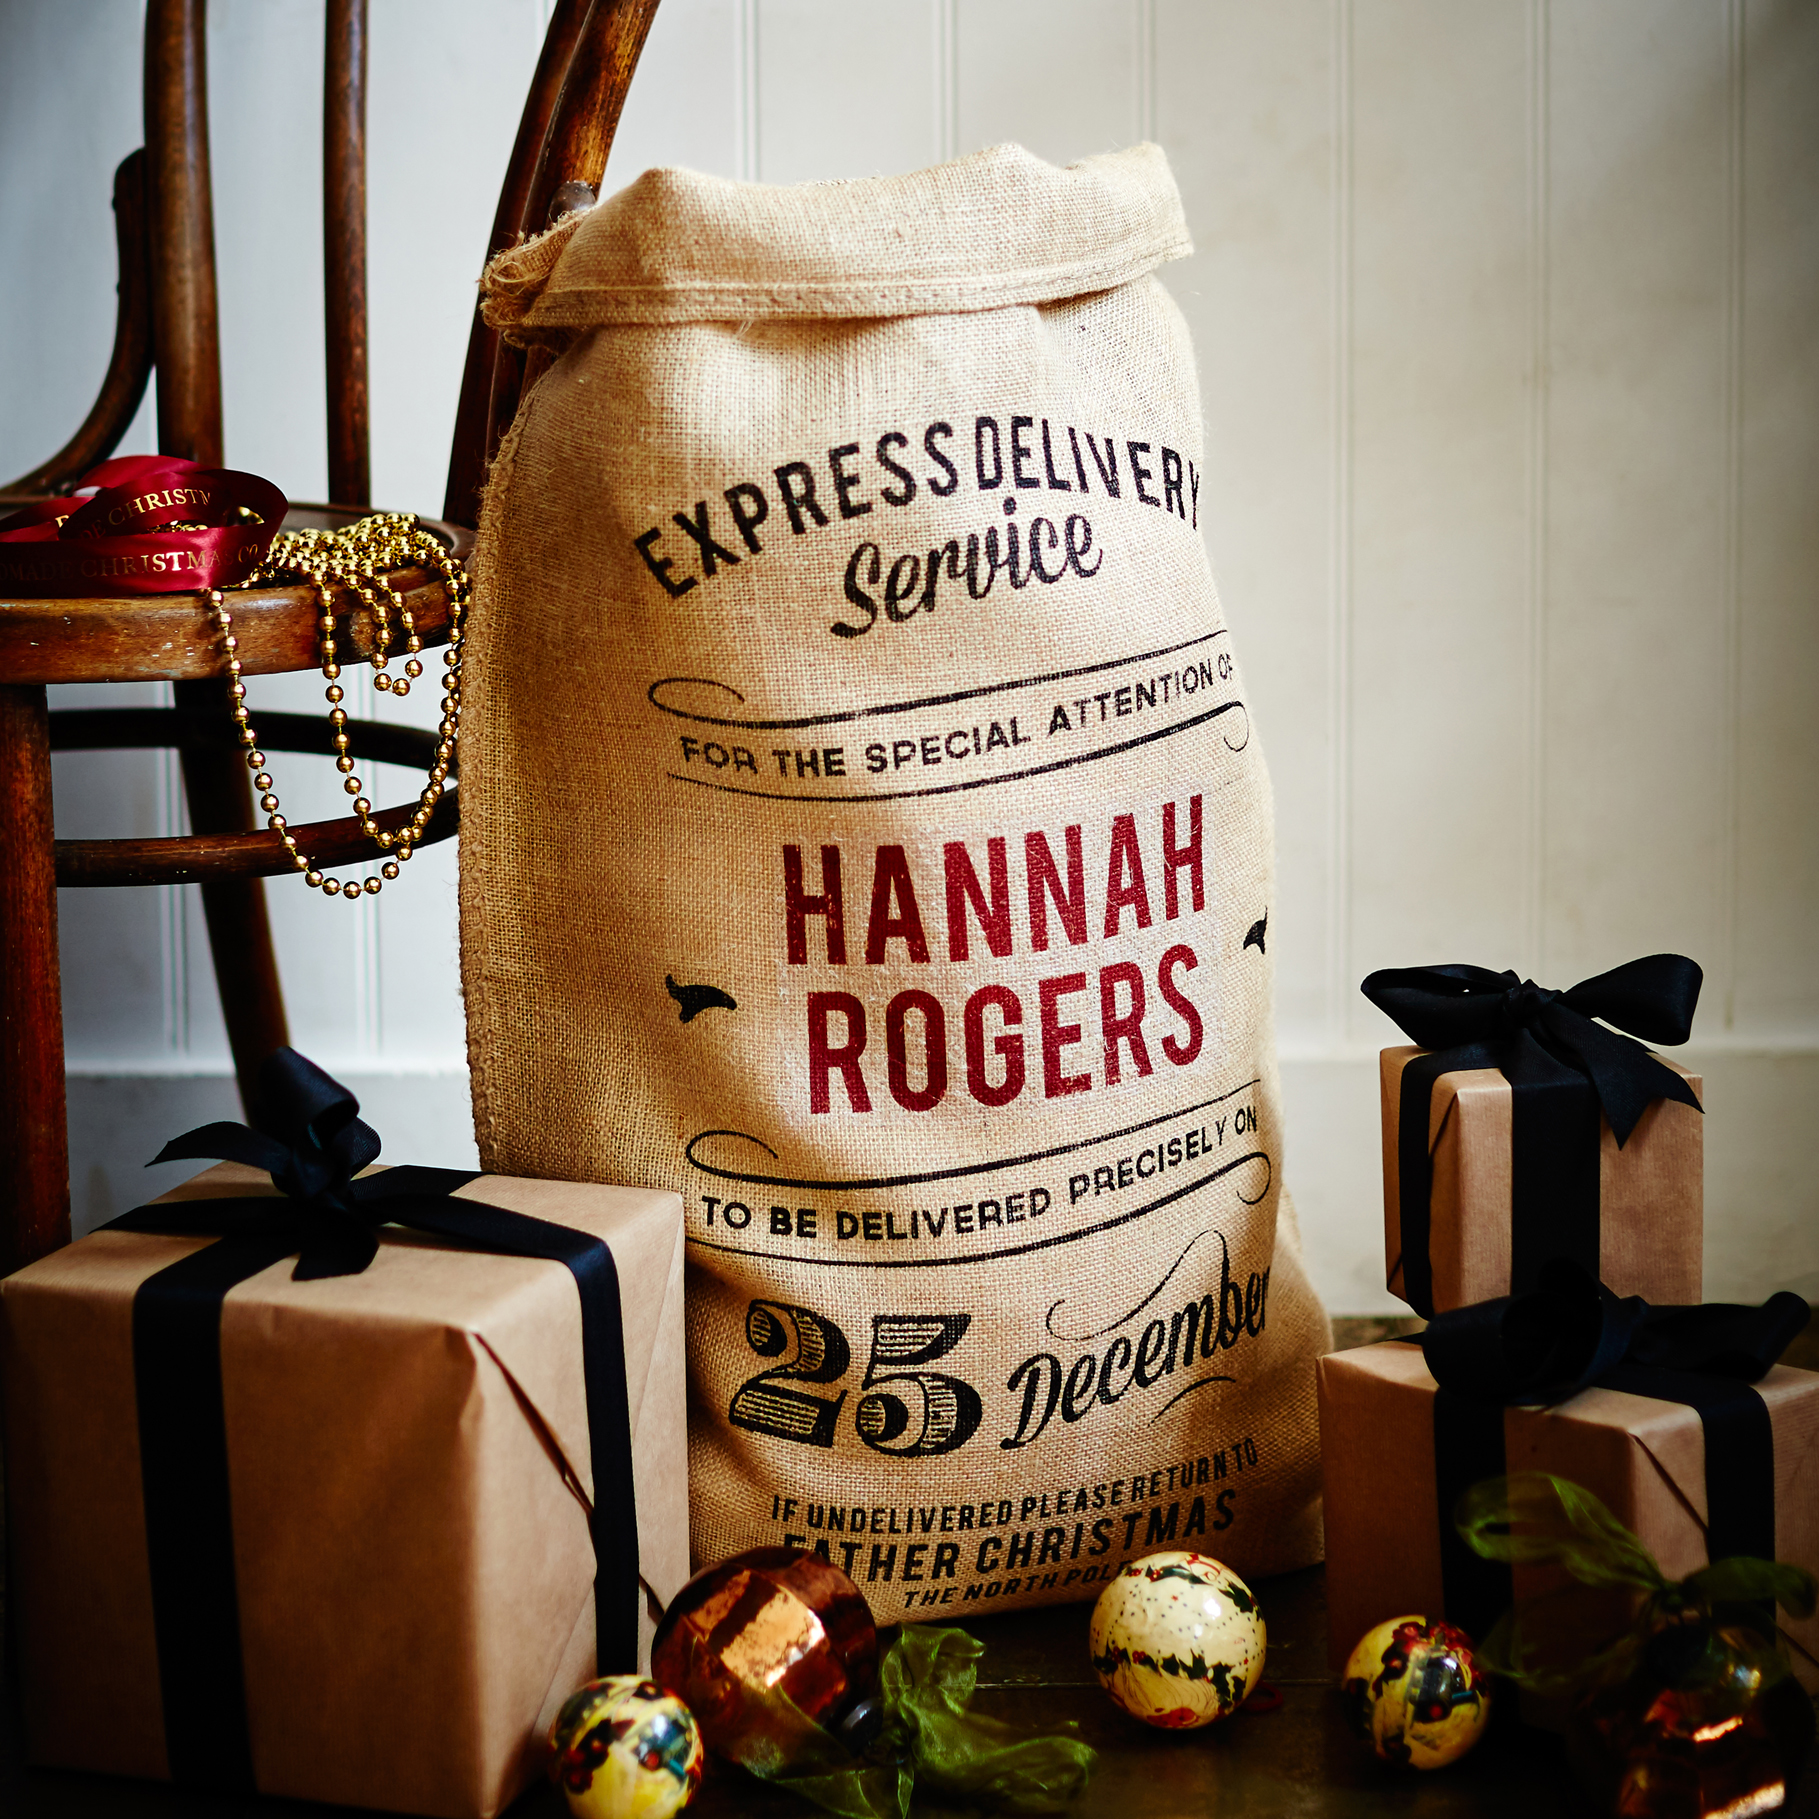 Order a personalized sack of your choice, fill it with gifts, and keep those curious hands at bay until the time is right. (That's the hard part, we think.)